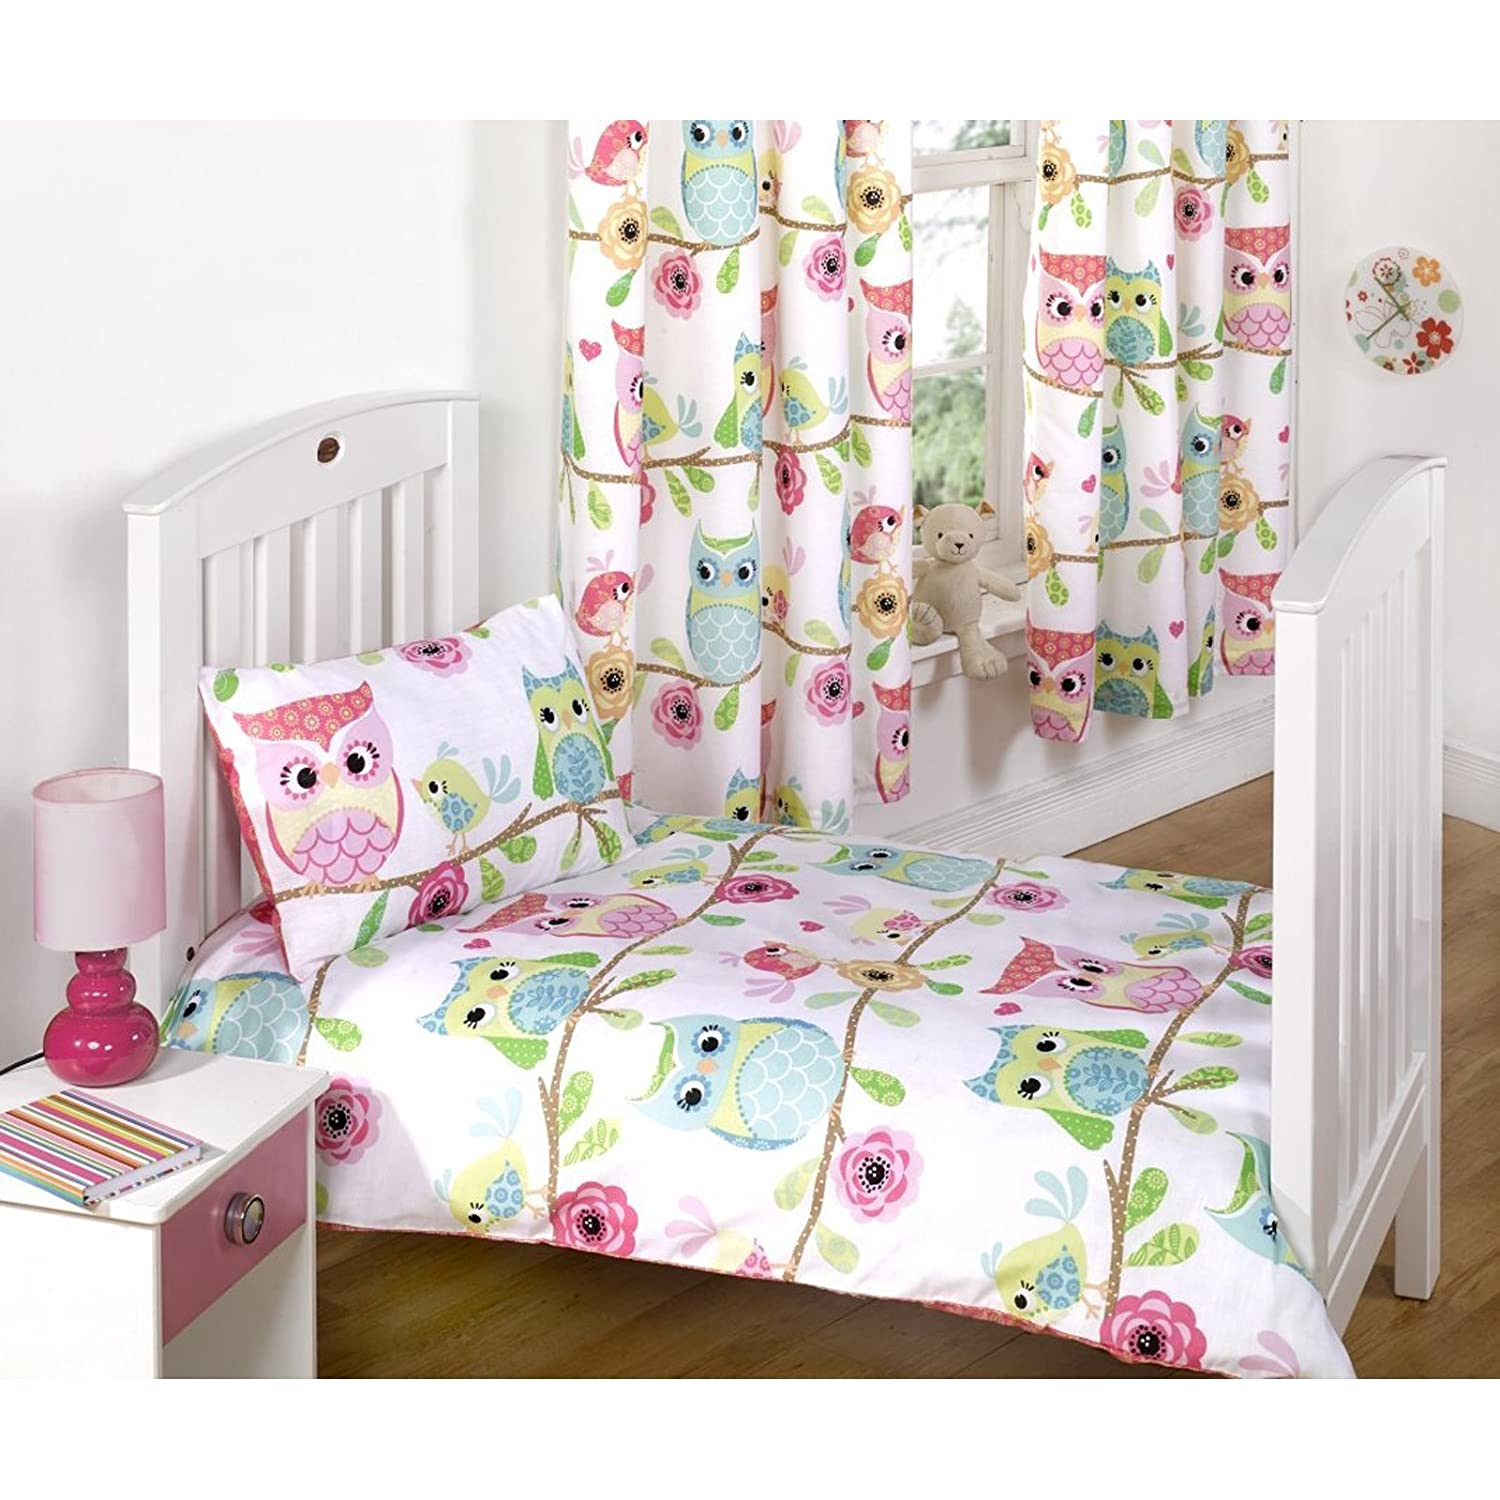 Owl Curtains For Bedroom Owl Lamp Light Lampshade Pink Owl Bedside Bedroom Table Desk Lamp